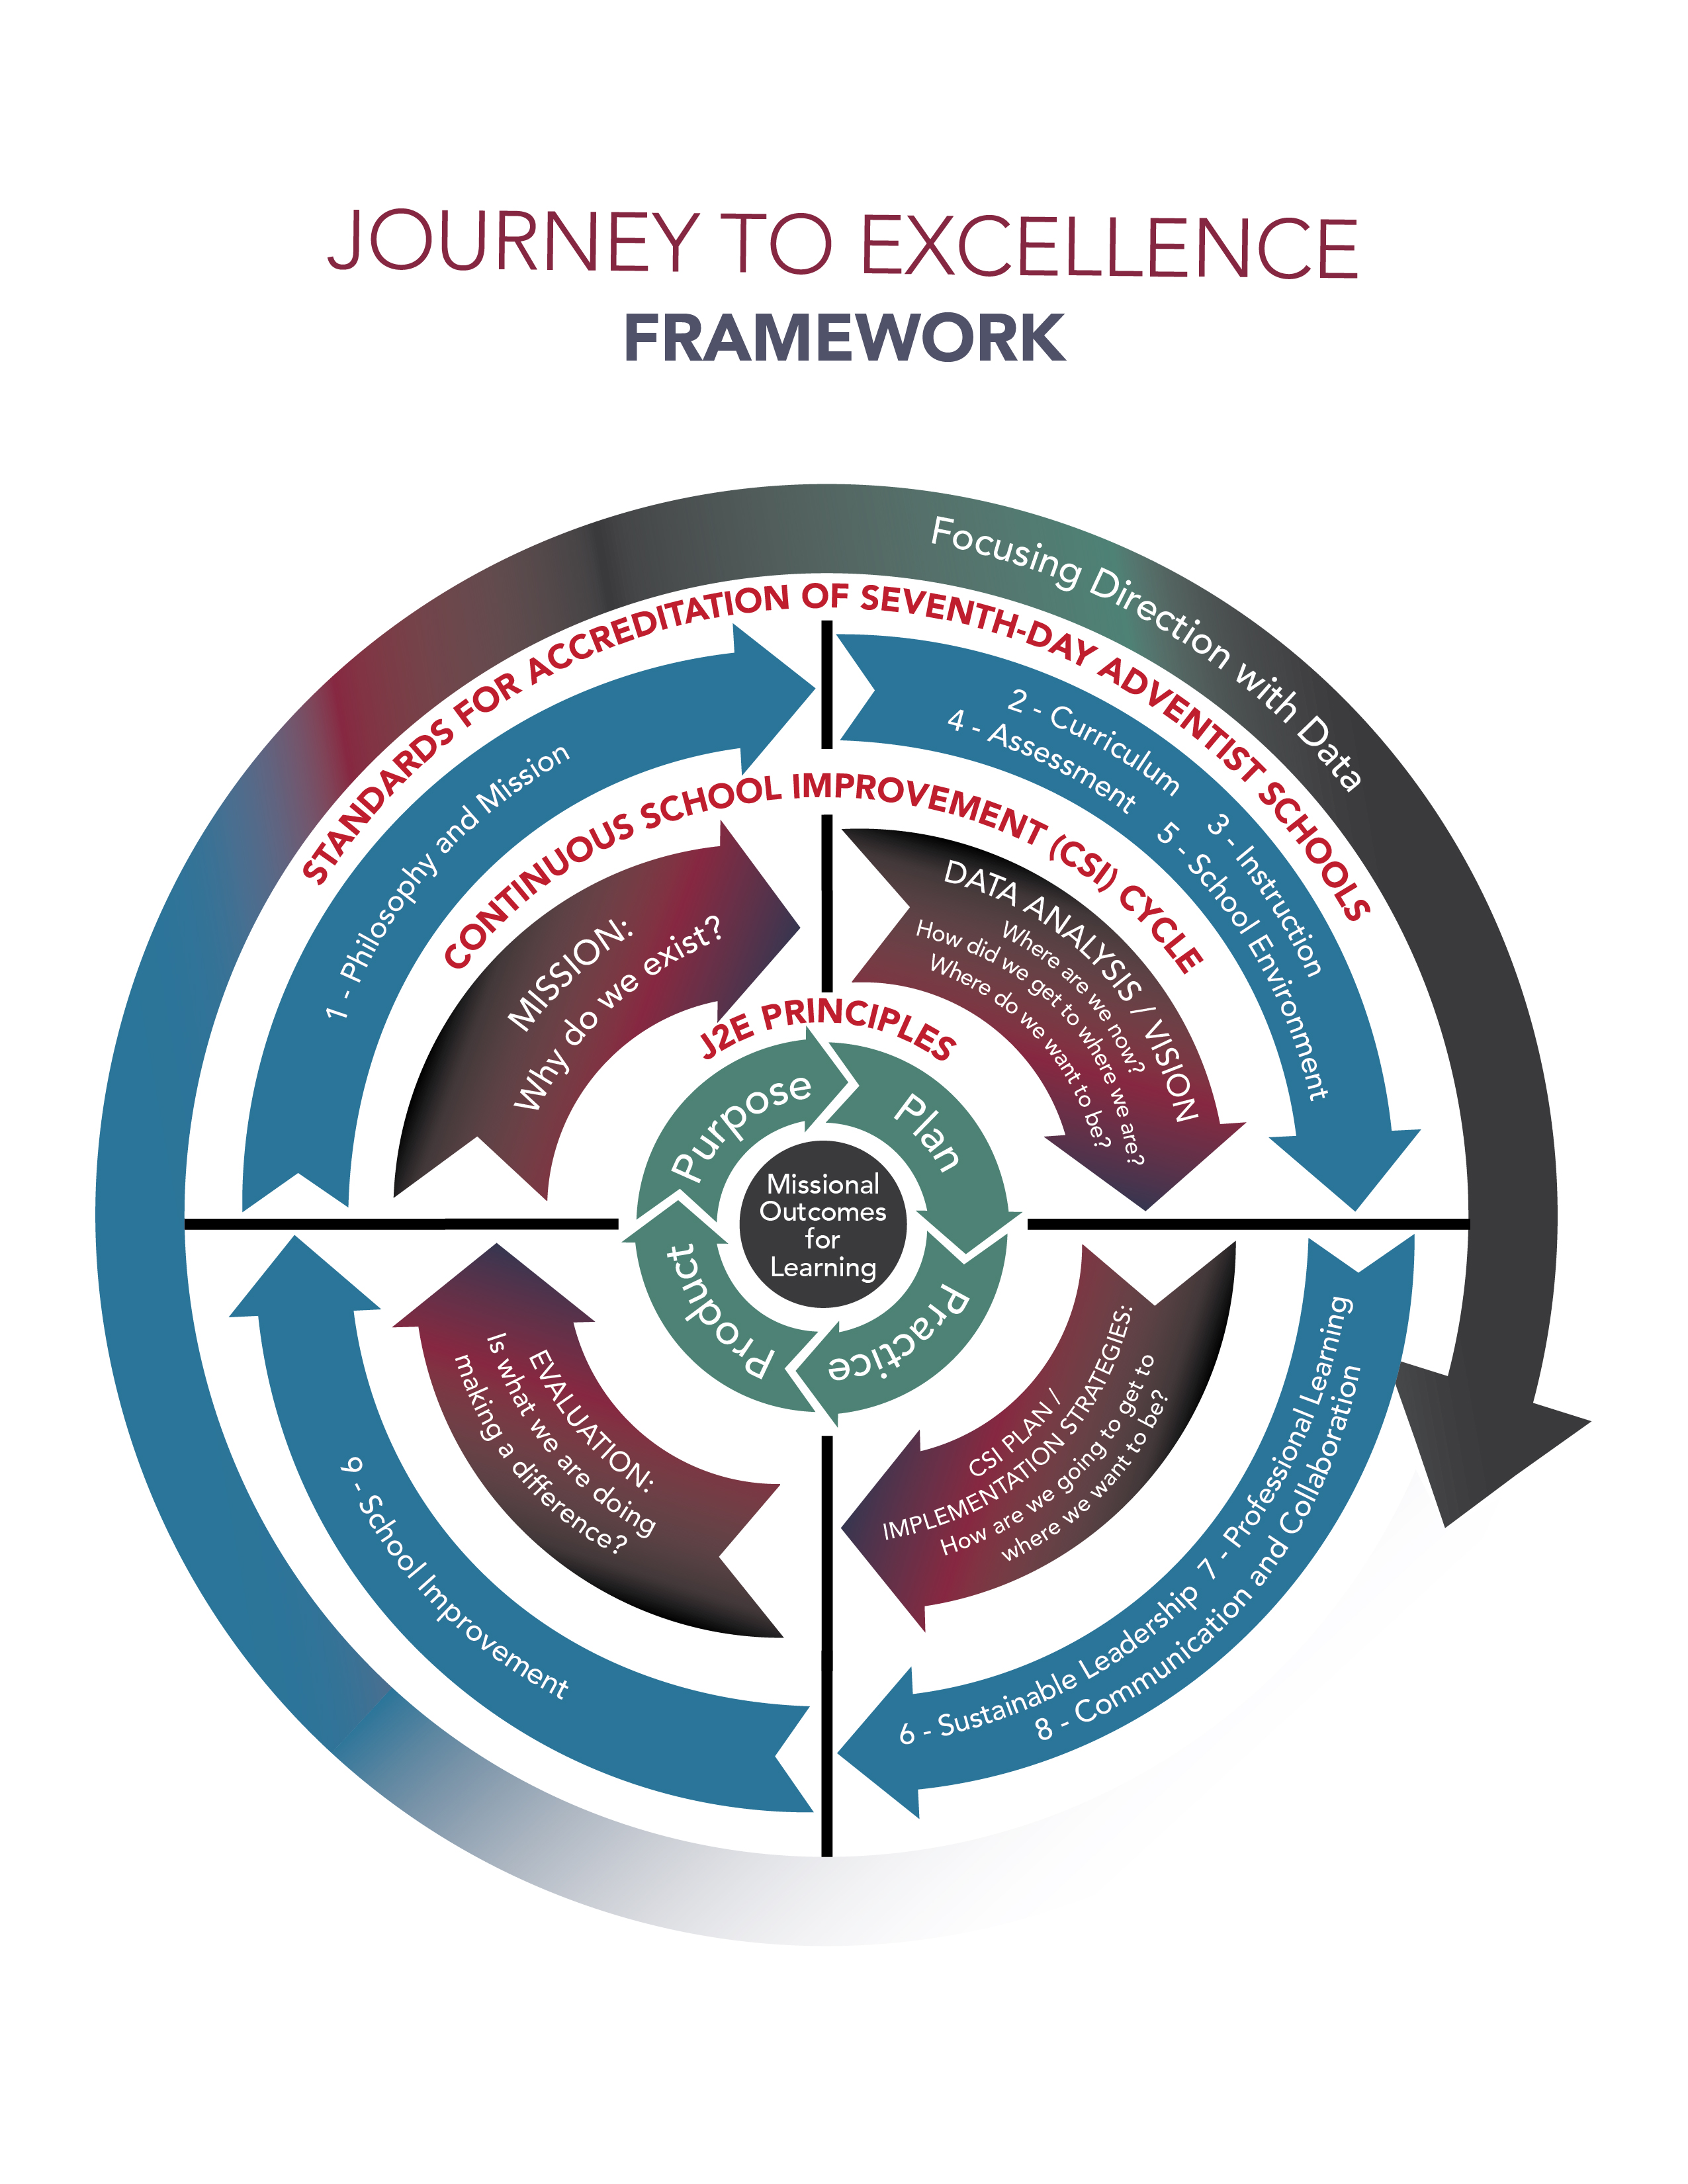 5 Journey to Excellence (J2E) Framework—Layer 2